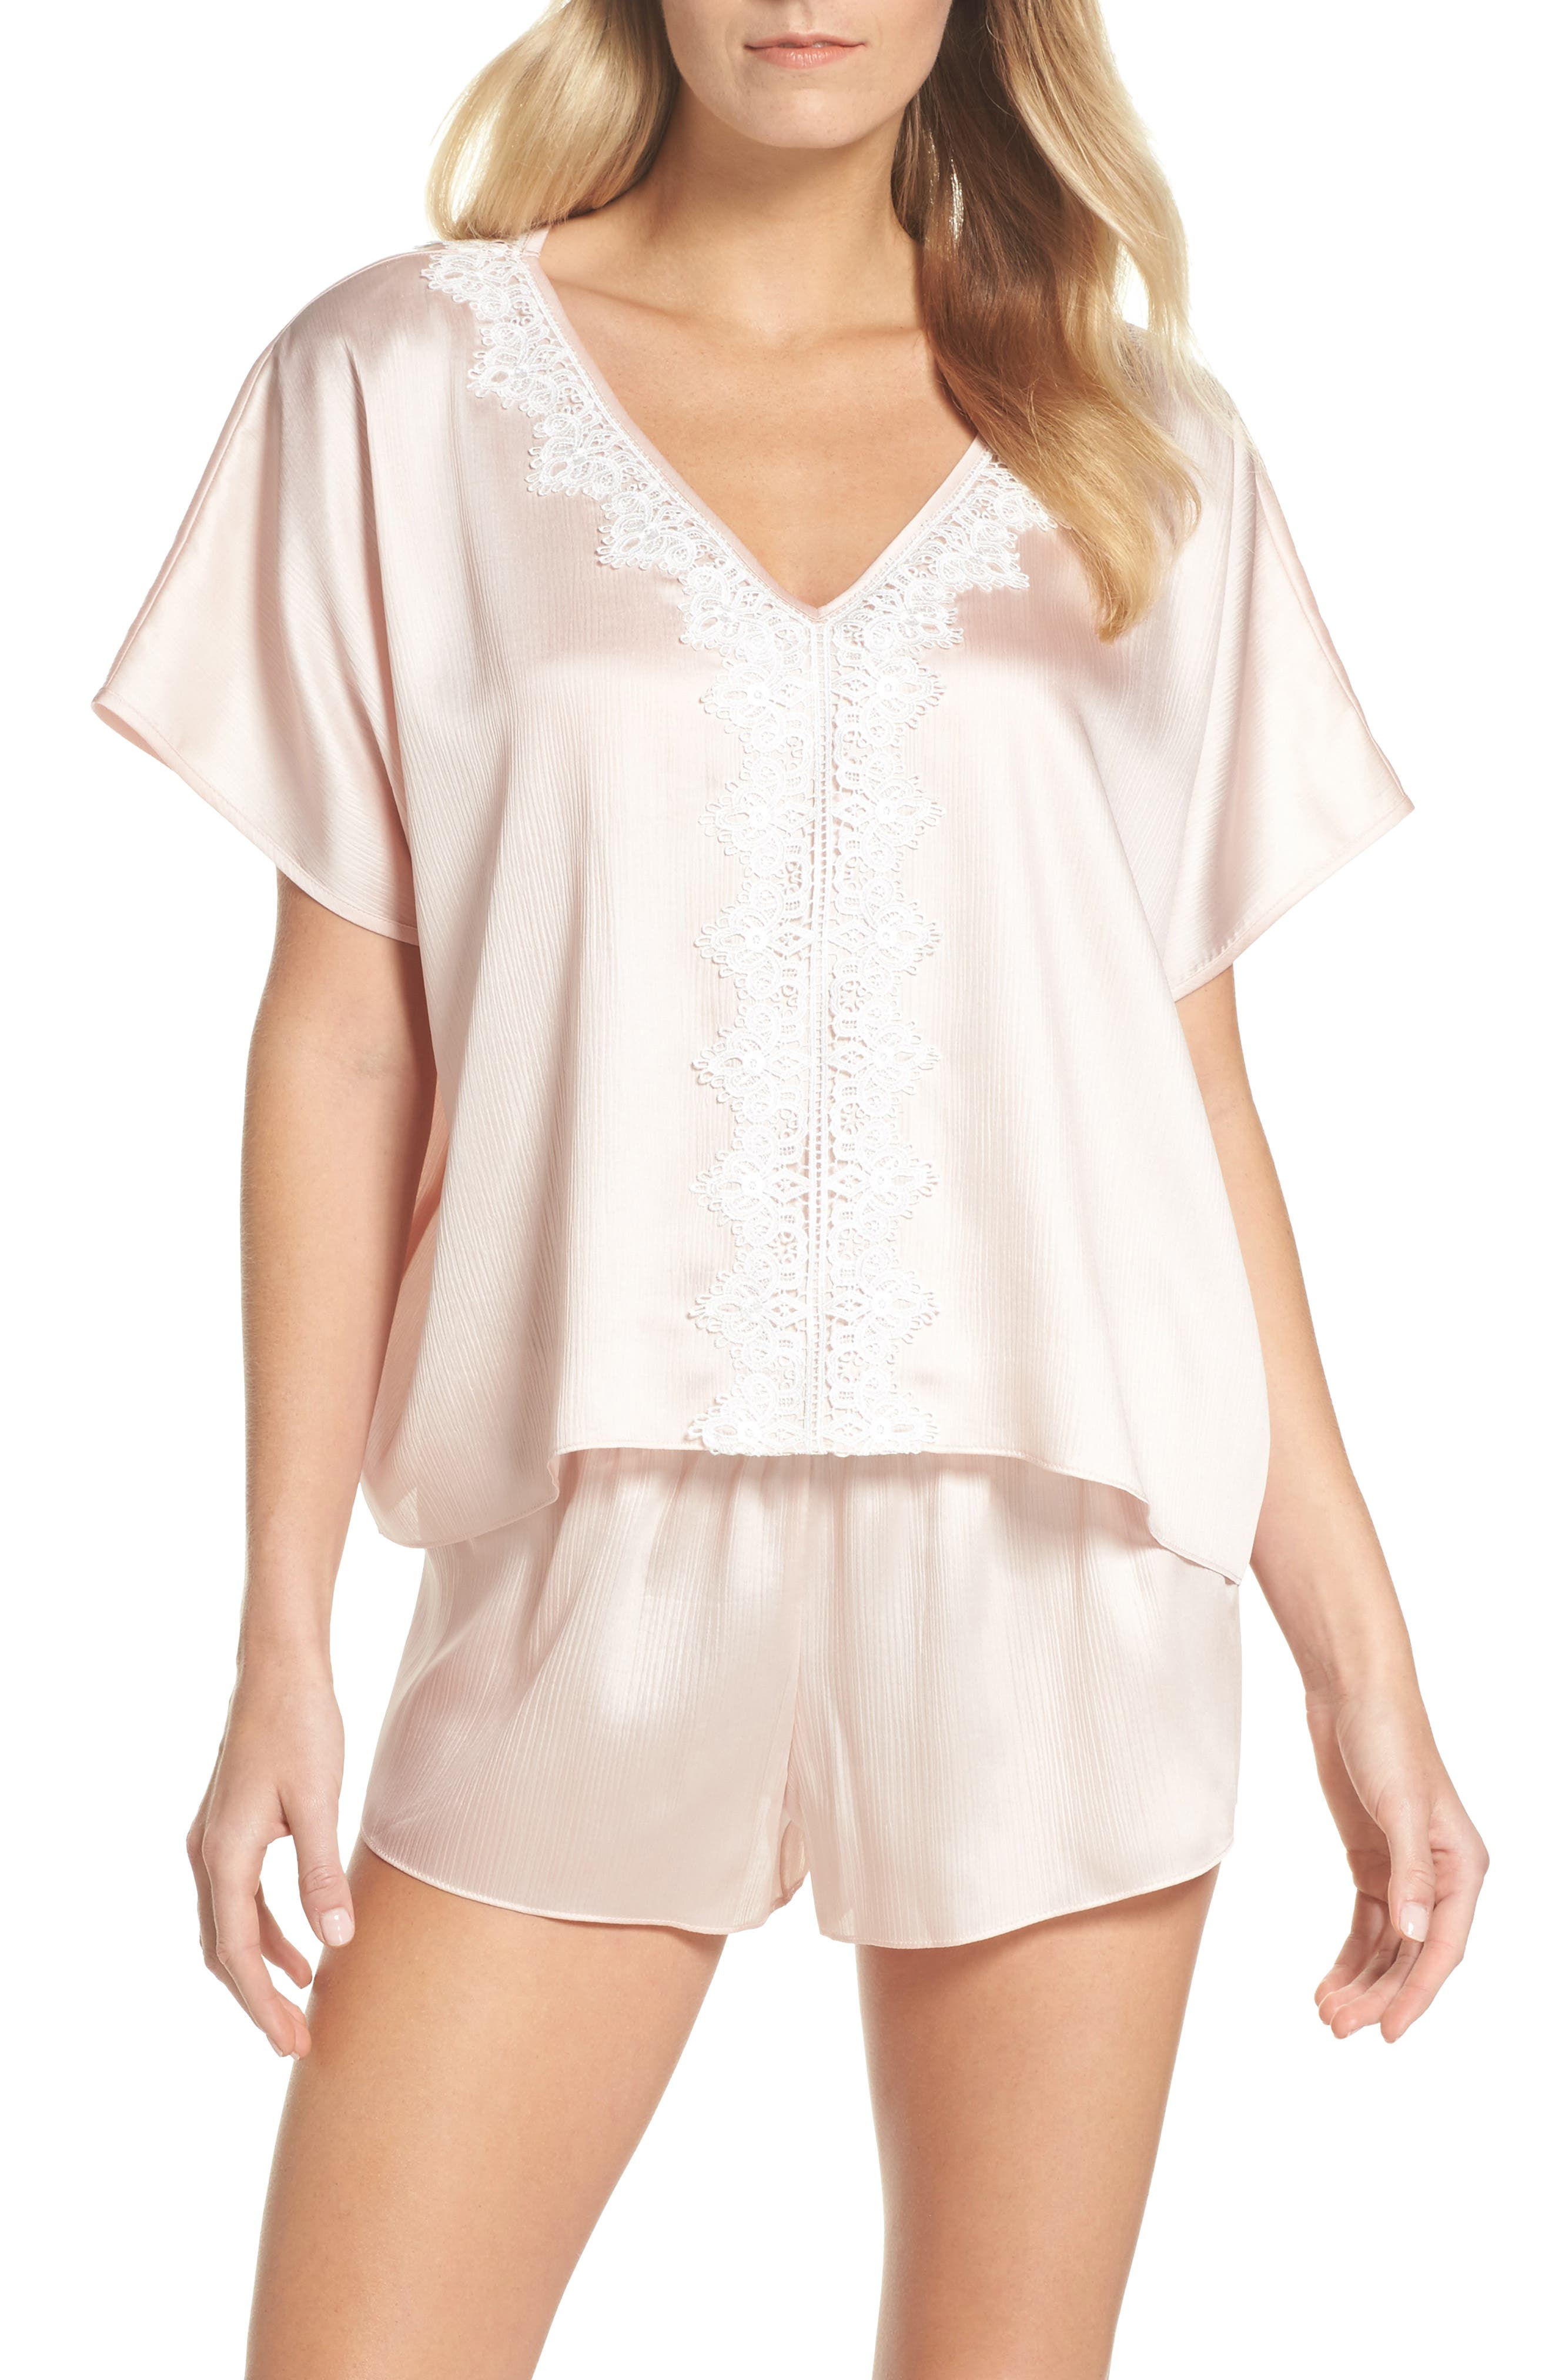 Mira Satin Short Pajamas,                             Main thumbnail 1, color,                             650